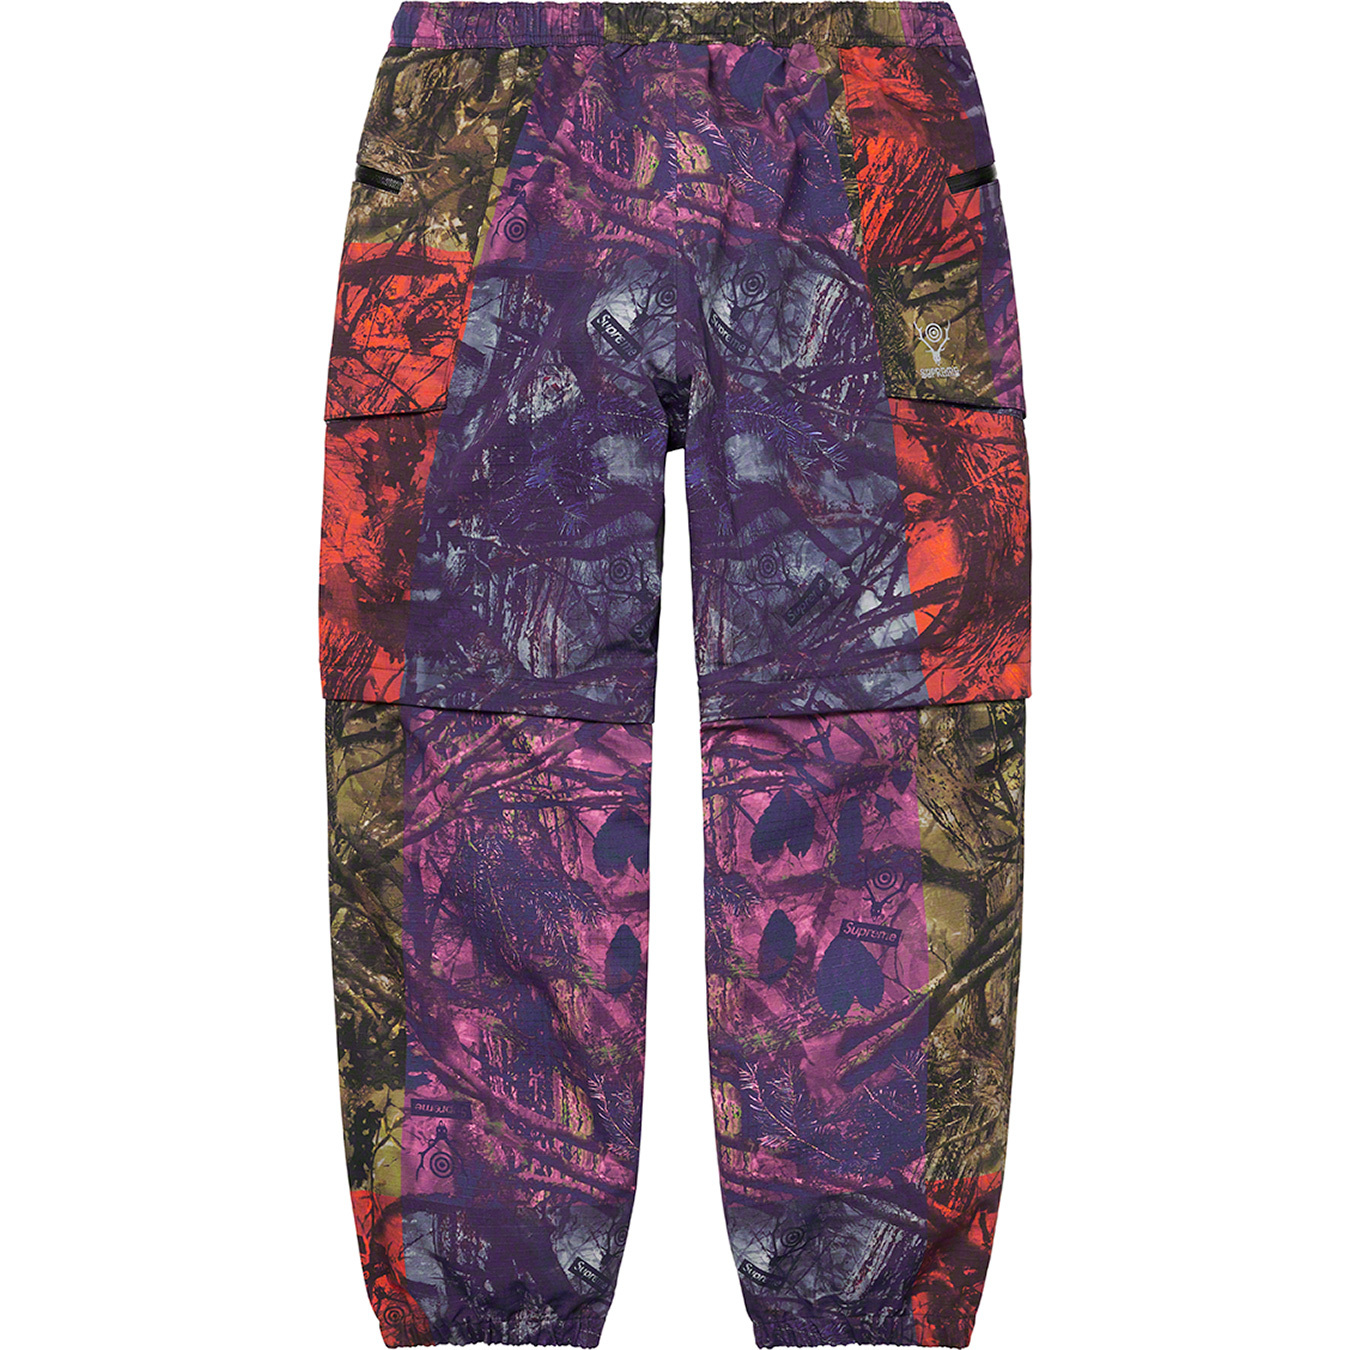 supreme-south2-west8-21ss-collaboration-release-2020424-week9-river-trek-pant